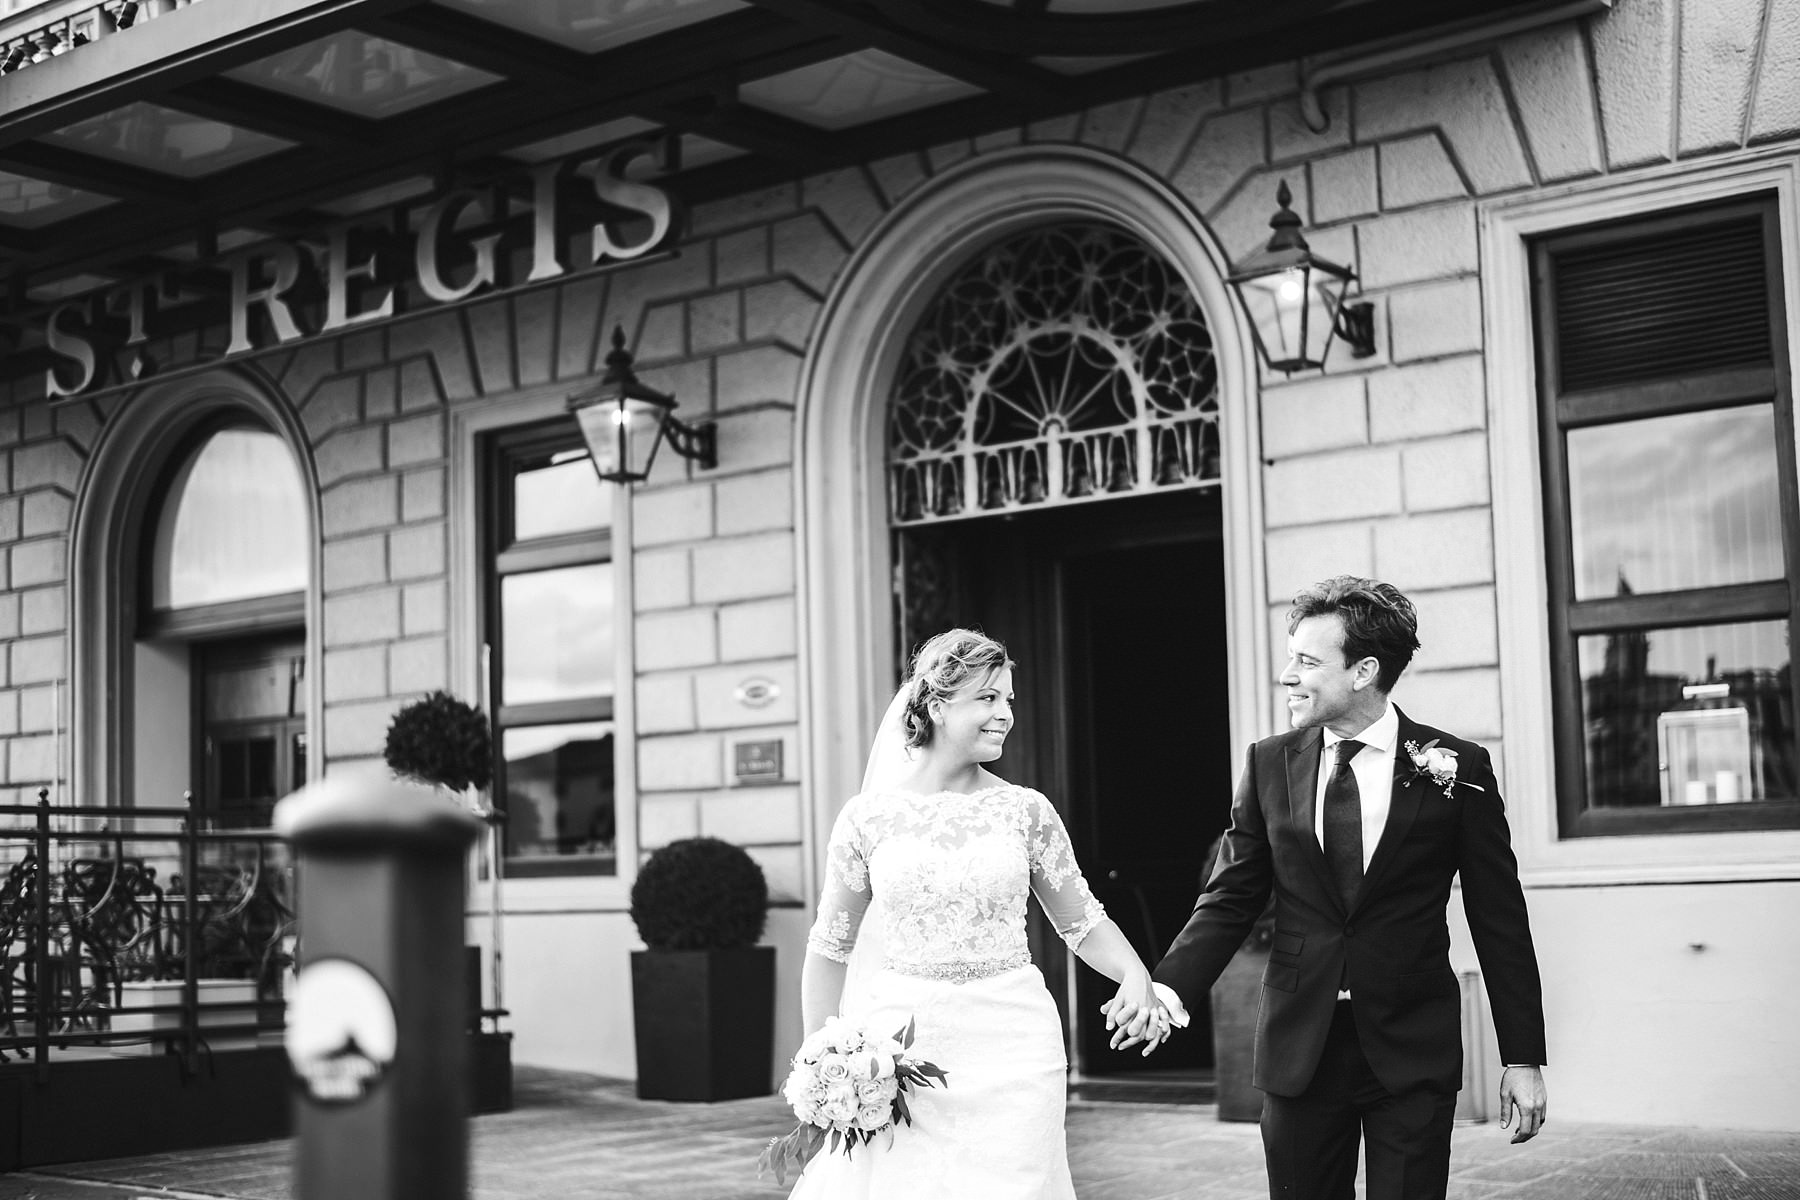 Bride and groom at their intimate wedding in Florence celebrated at the luxury hotel St. Regis